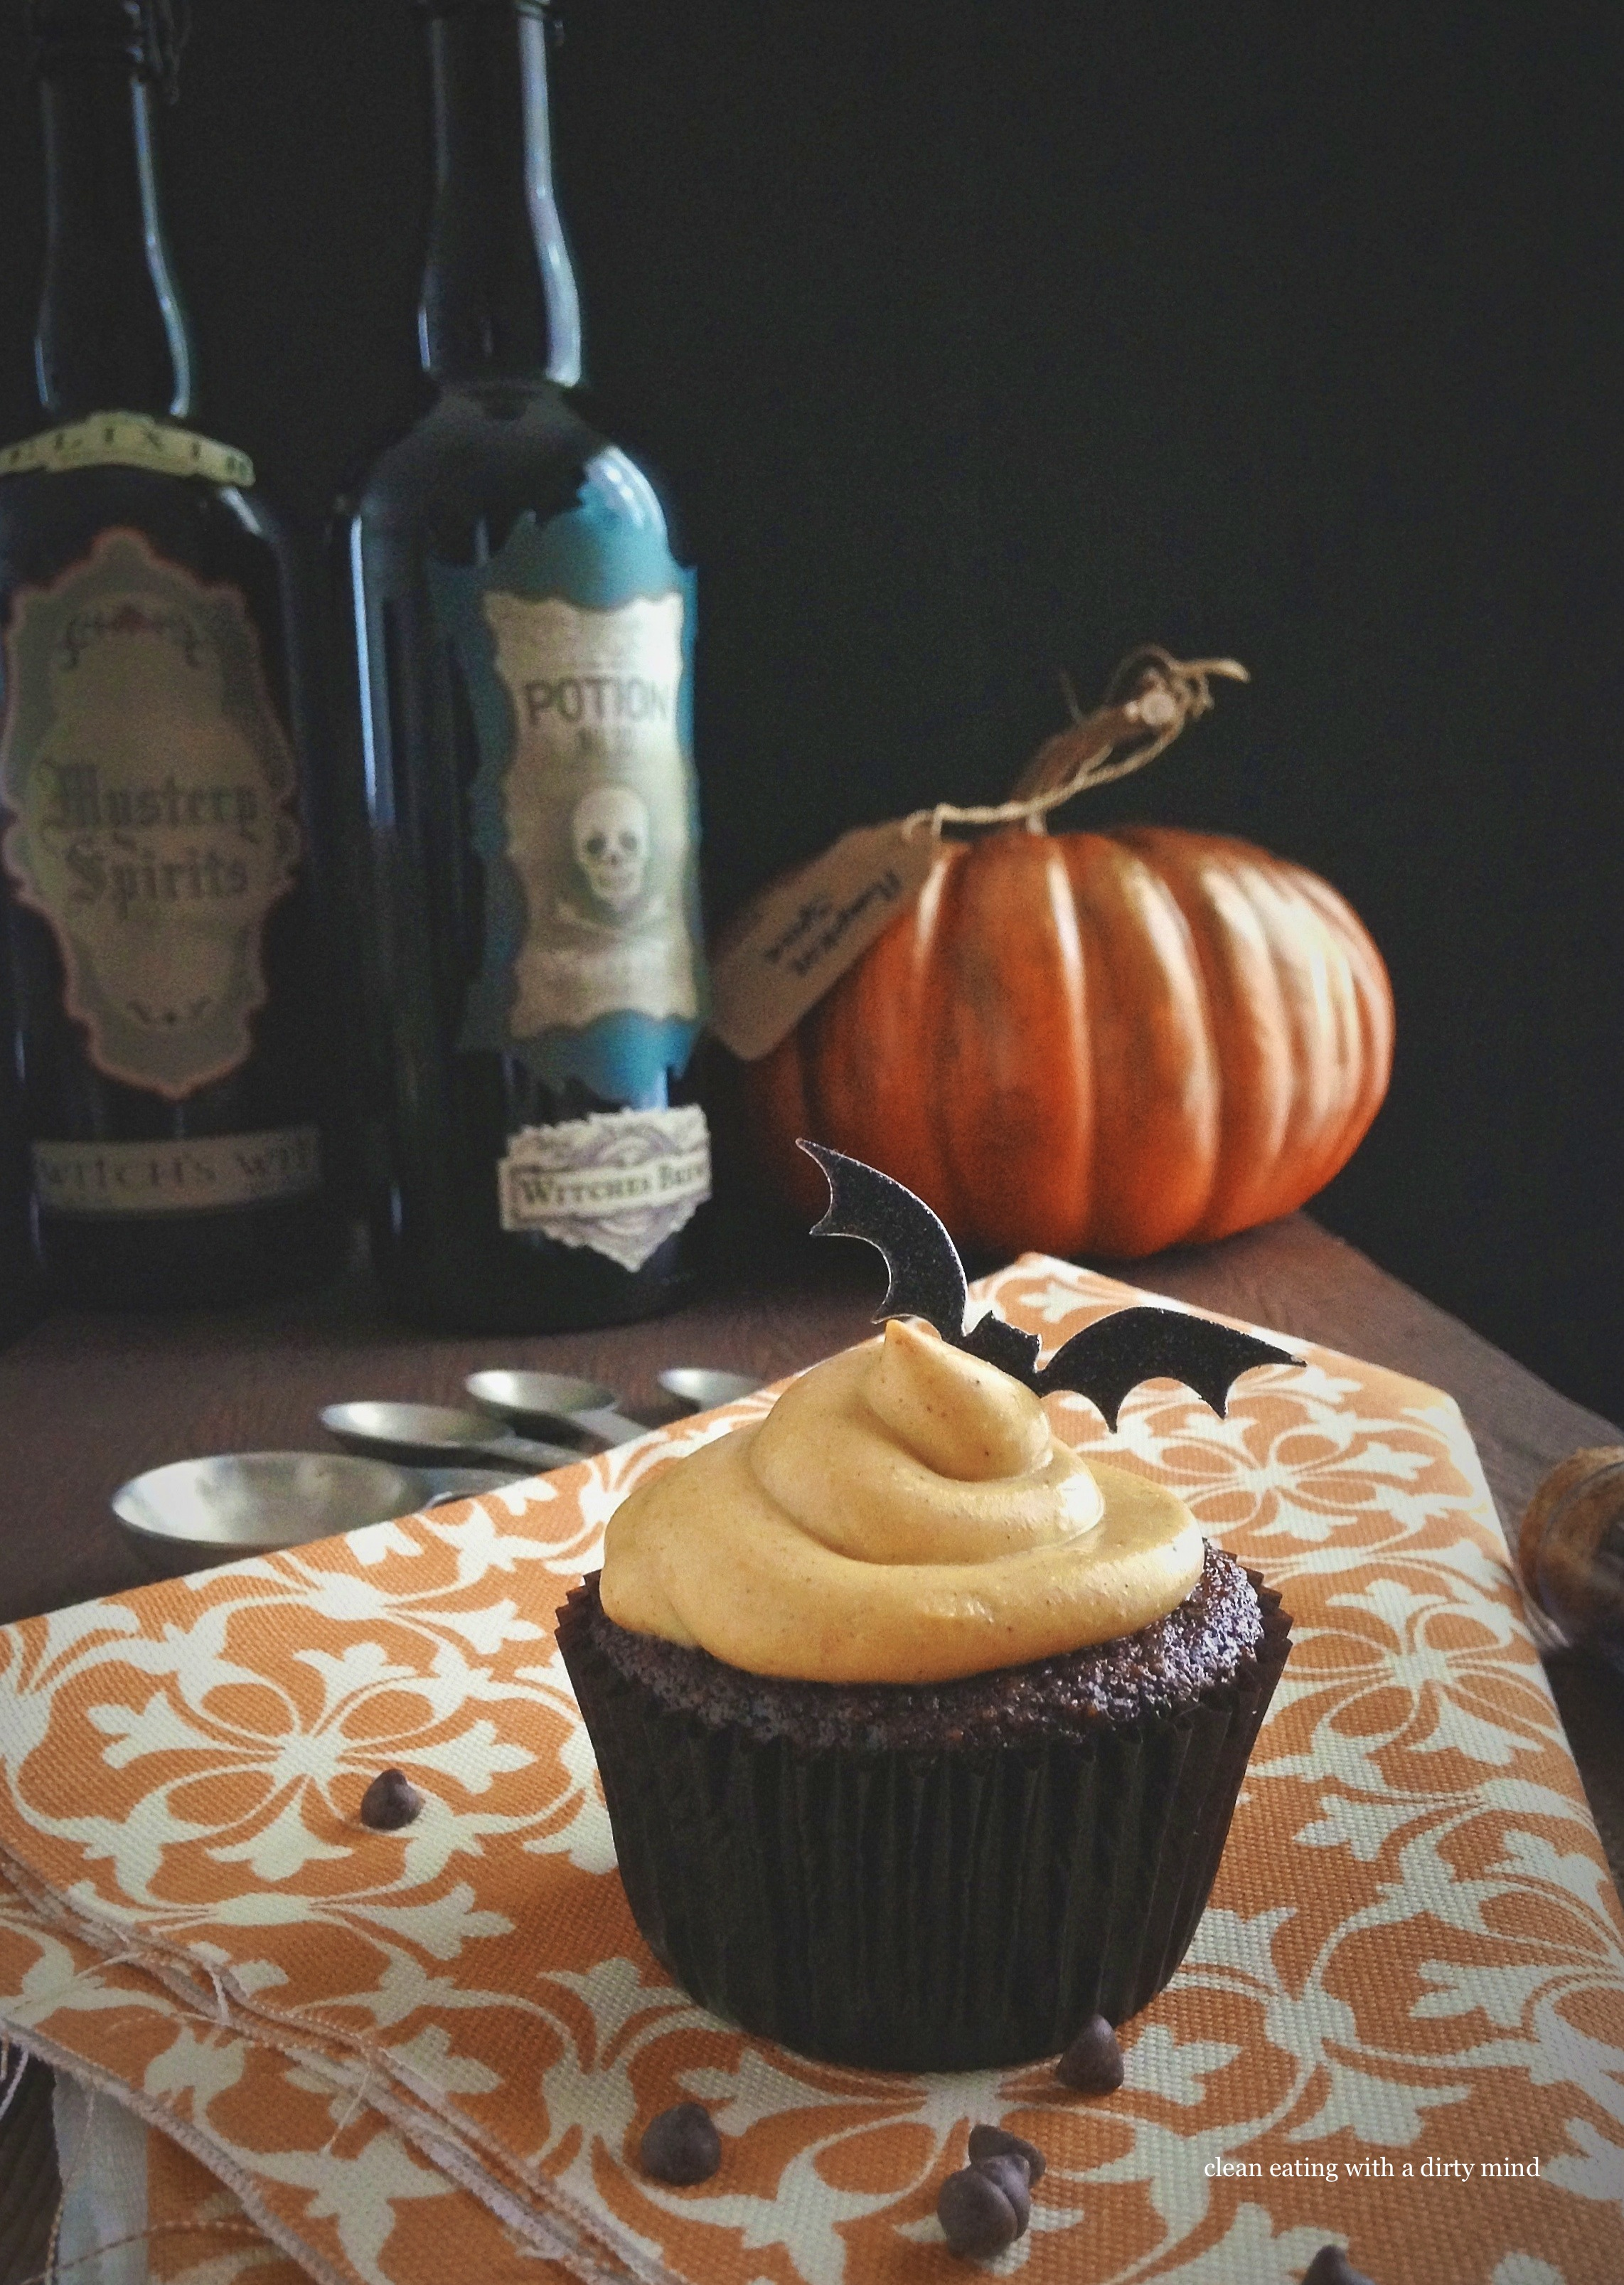 Paleo Chocolate Cupcakes With Pumpkin Spice Frosting Hit The PaleOMG ...